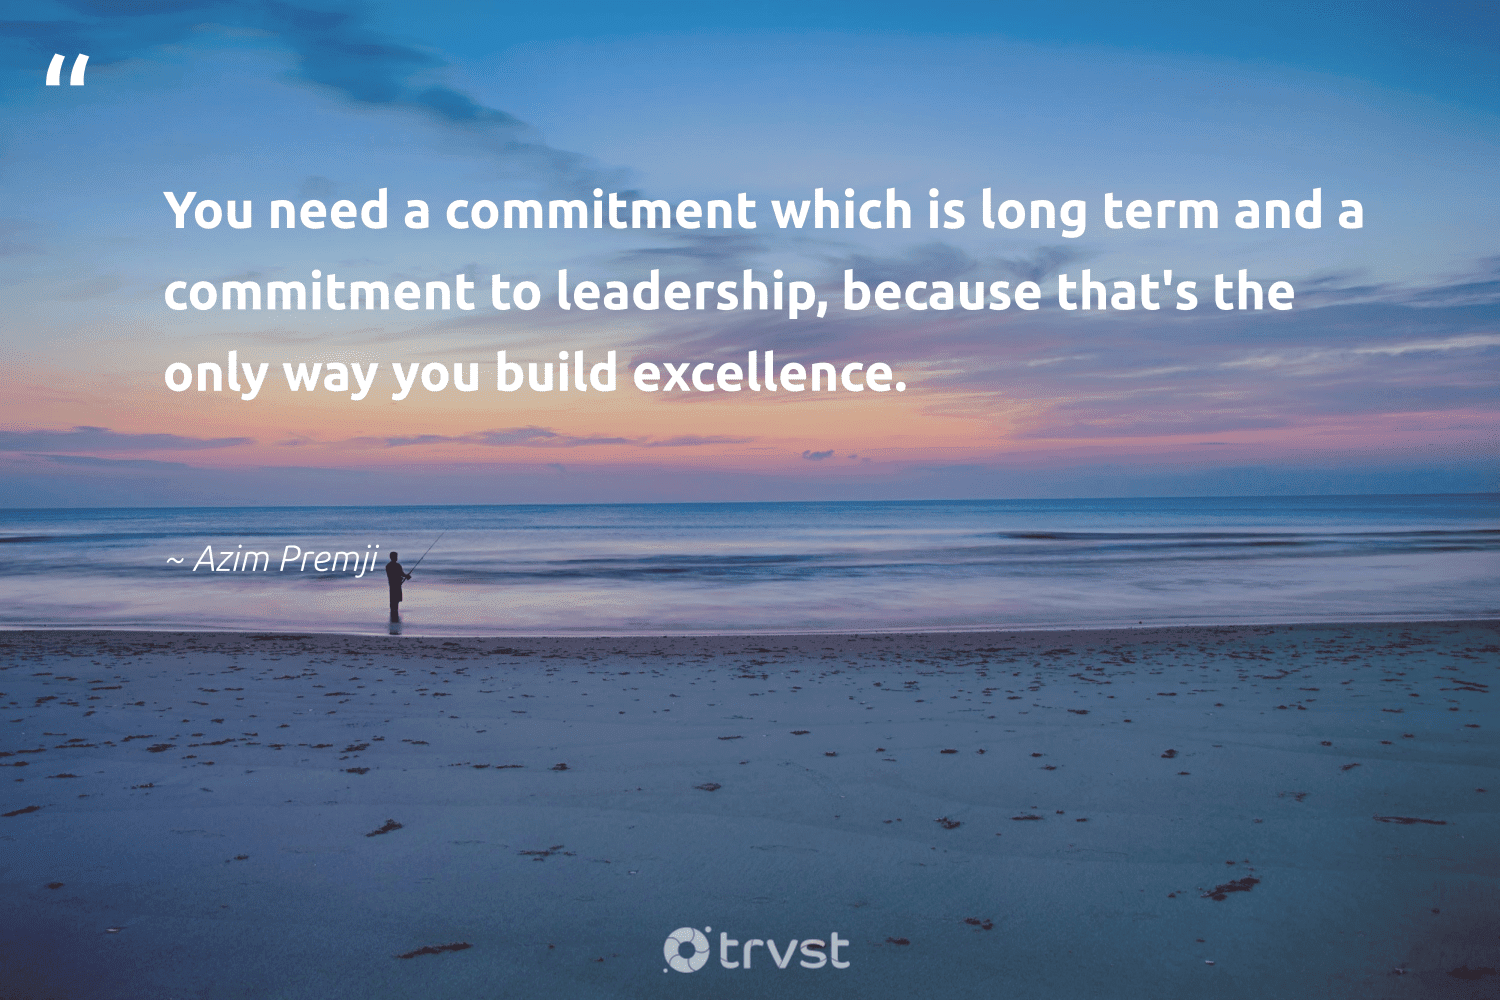 """""""You need a commitment which is long term and a commitment to leadership, because that's the only way you build excellence.""""  - Azim Premji #trvst #quotes #leadership #leadershipdevelopment #futureofwork #begreat #beinspired #leadershipskills #nevergiveup #softskills #dotherightthing #leadershipqualities"""